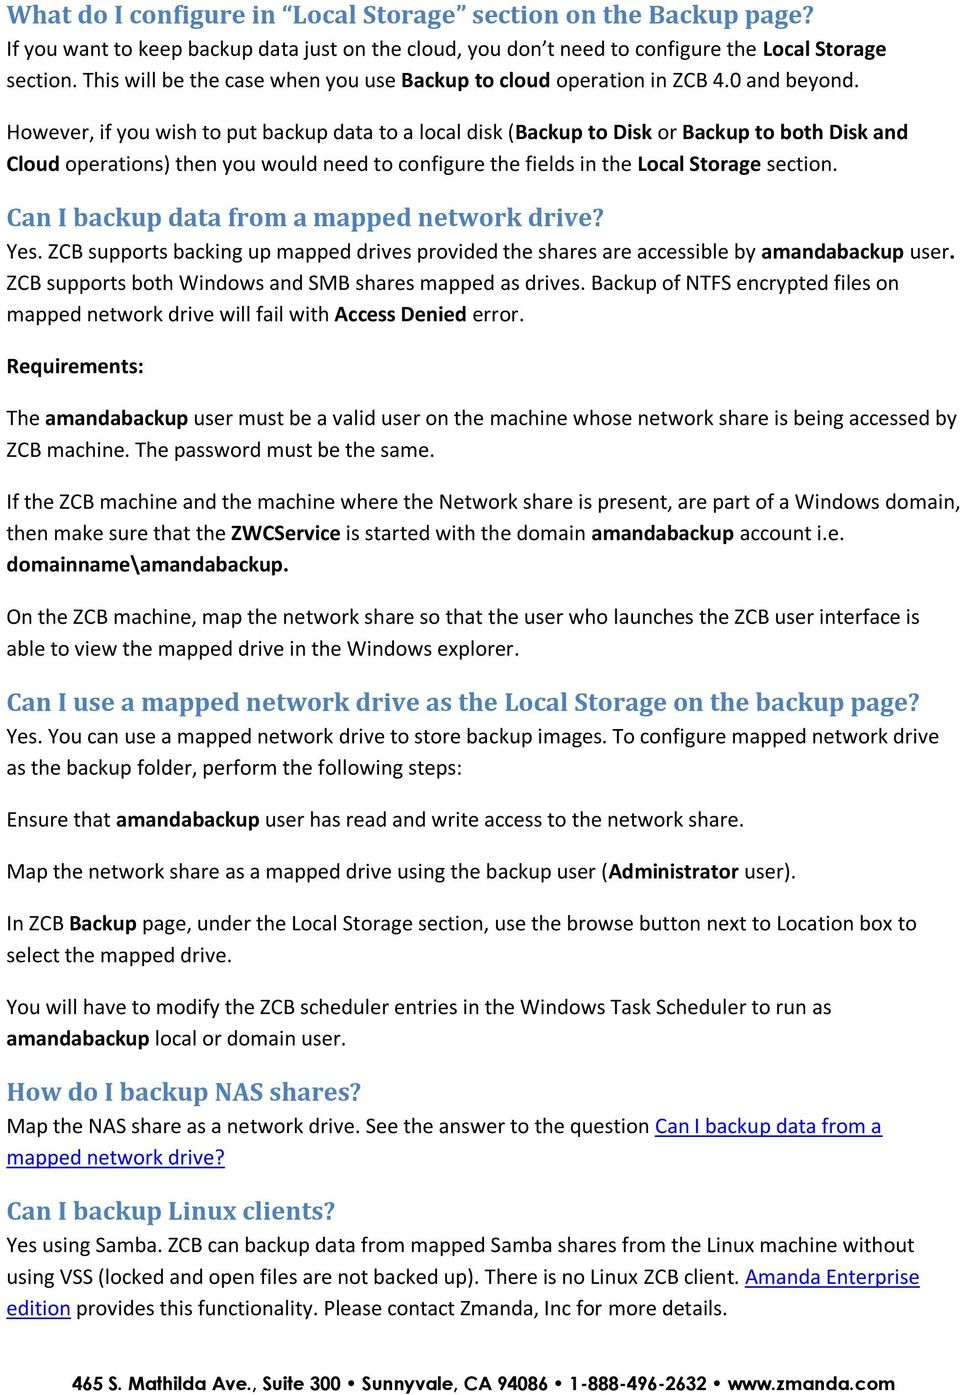 Zmanda Cloud Backup Frequently Asked Questions - PDF